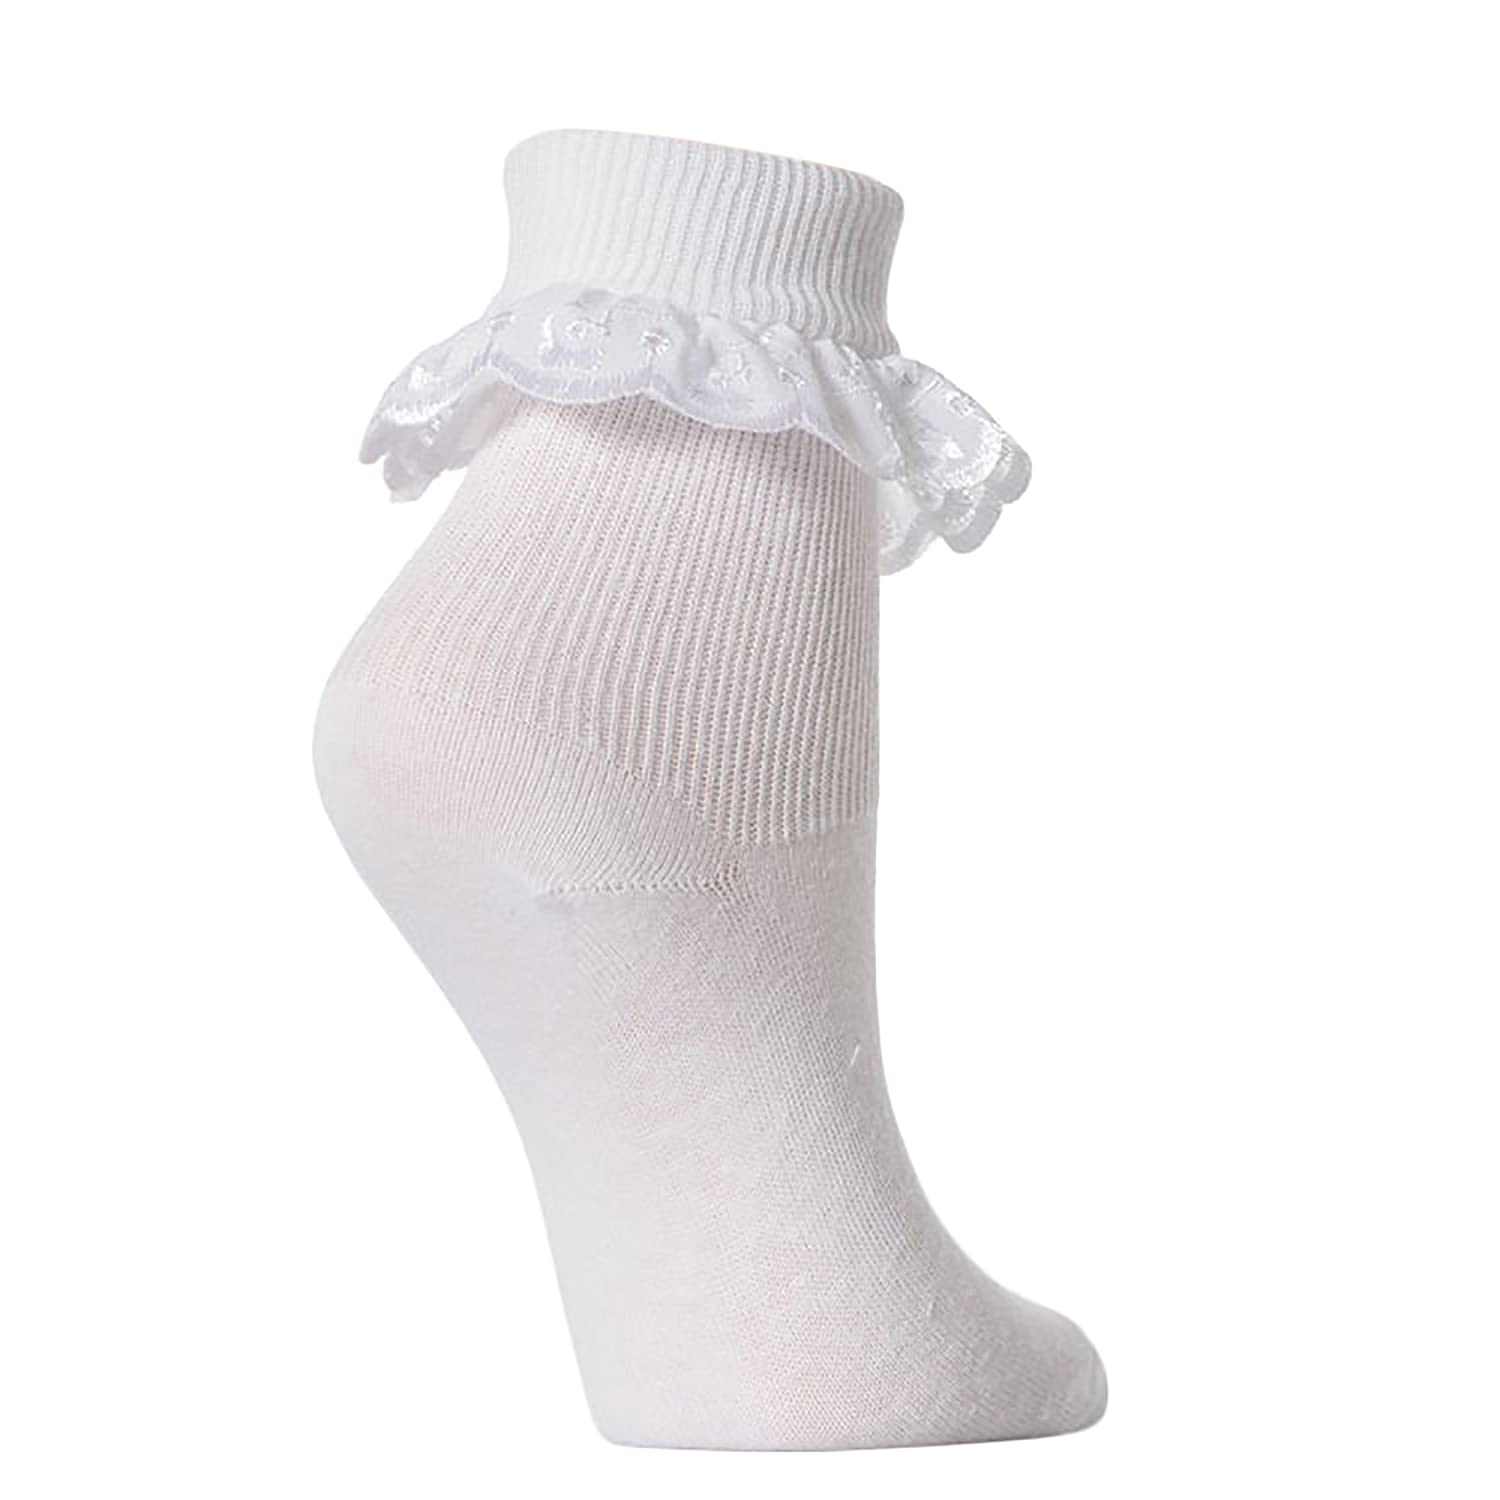 Baby Girls Extra Soft Frilly Lace Top Socks Pack 3 Amazon